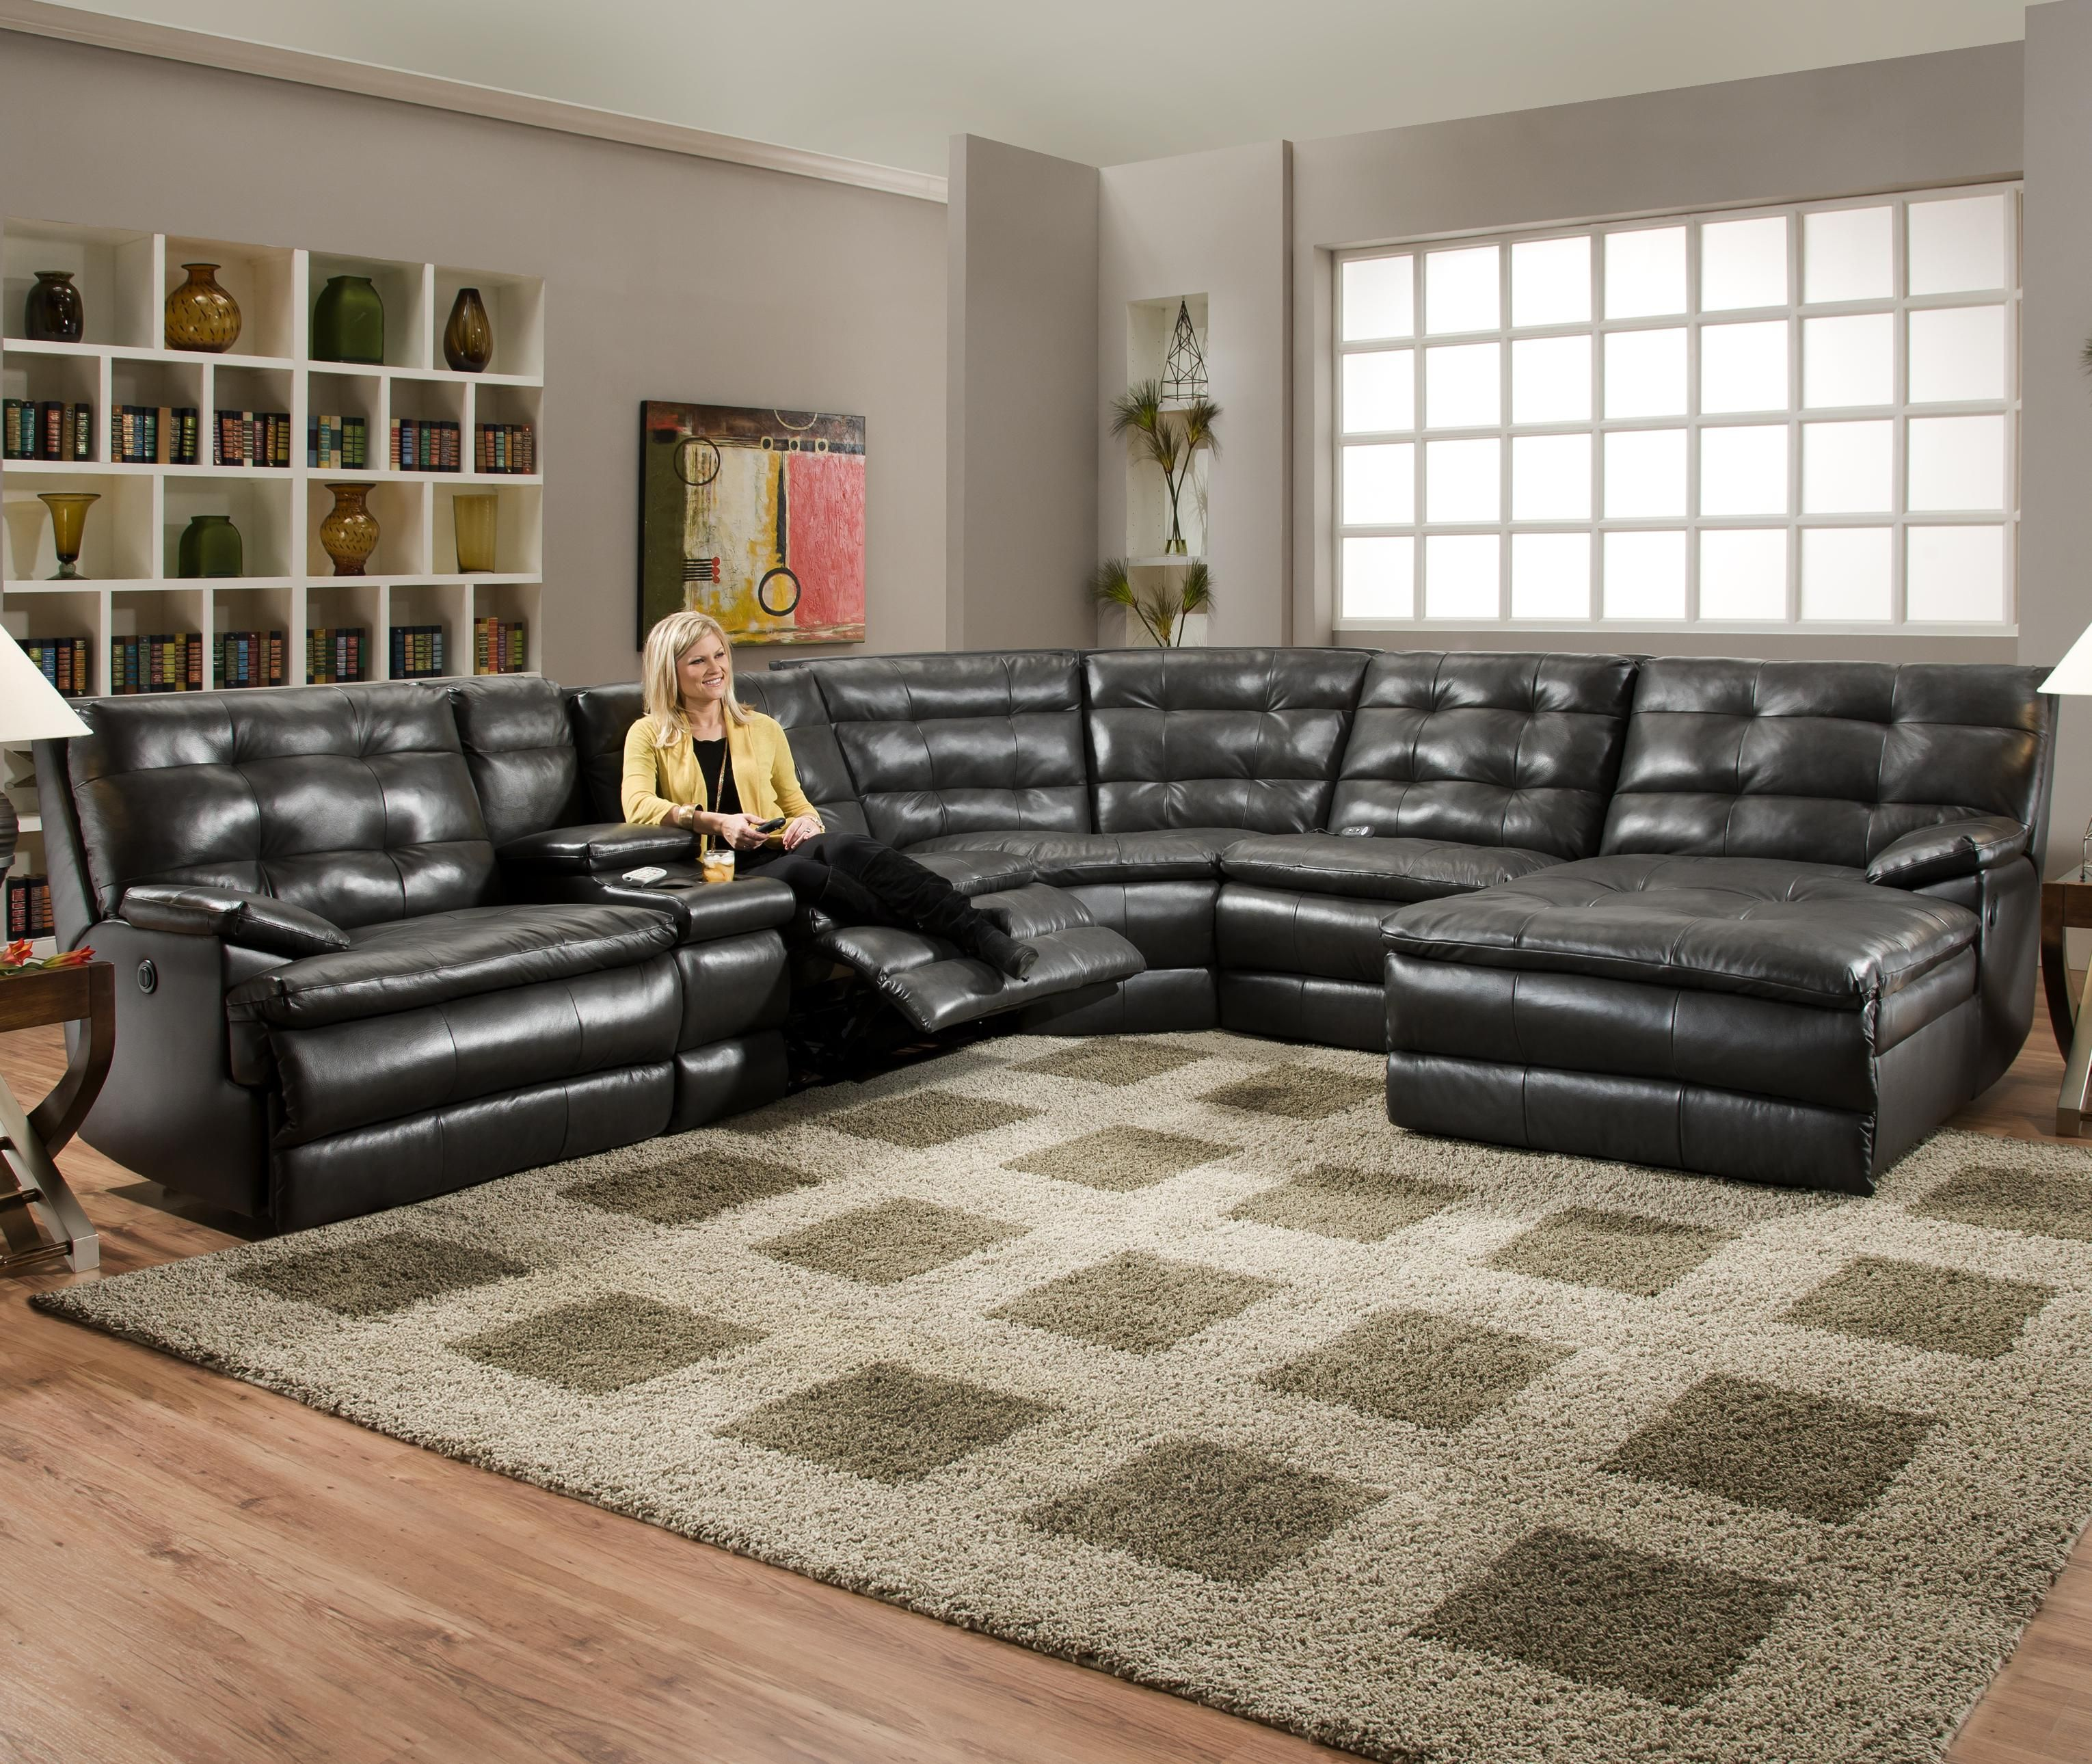 Luxurious Tufted Leather Sectional Sofa in Classy